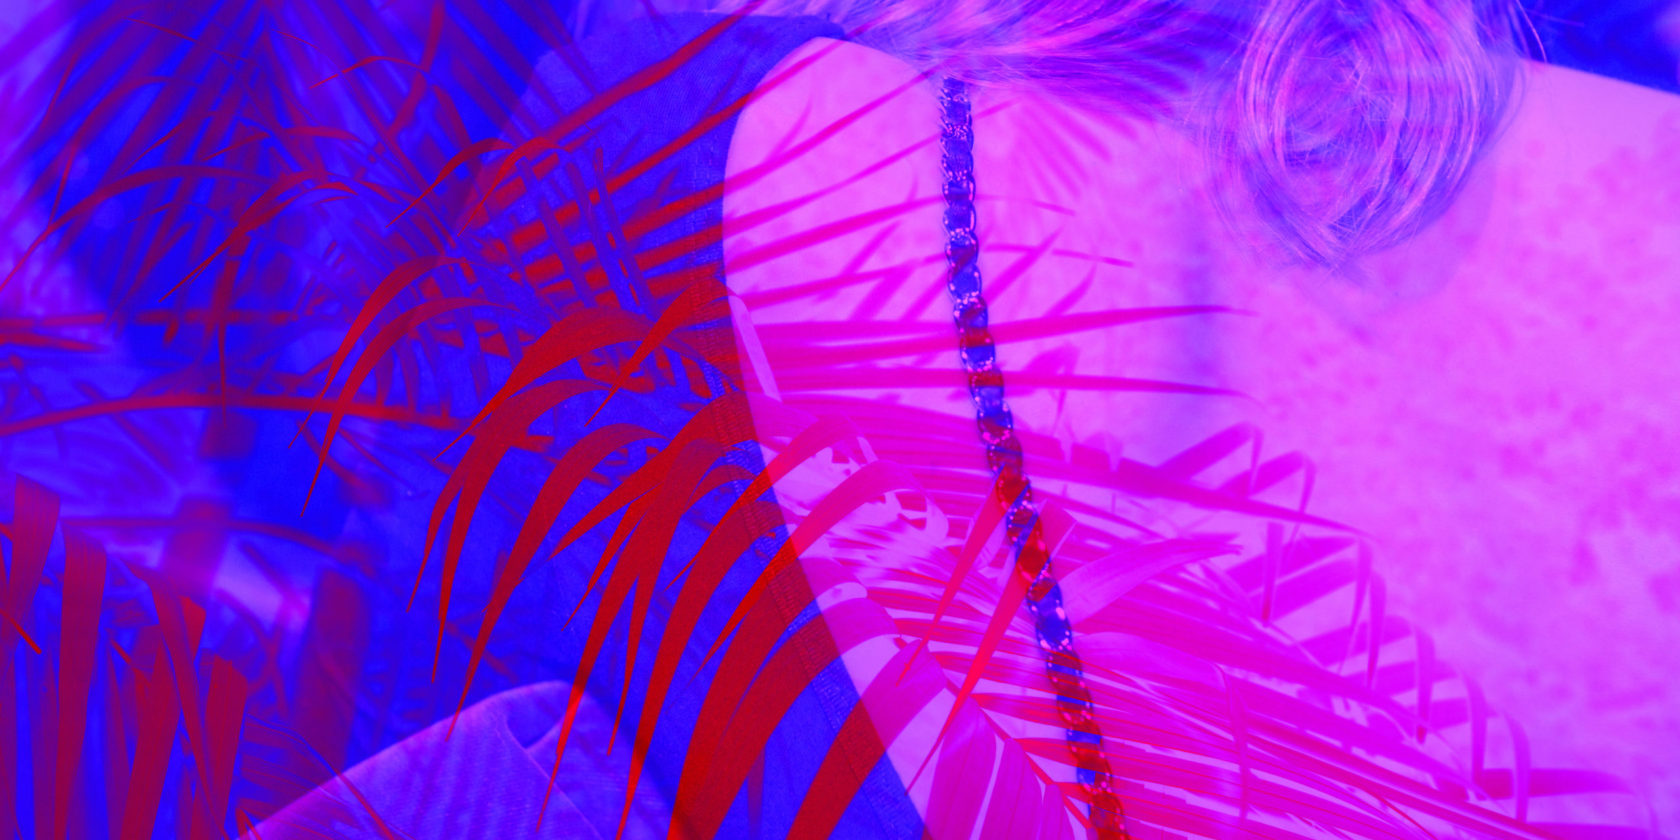 Blurred palm tree leaves and woman's back